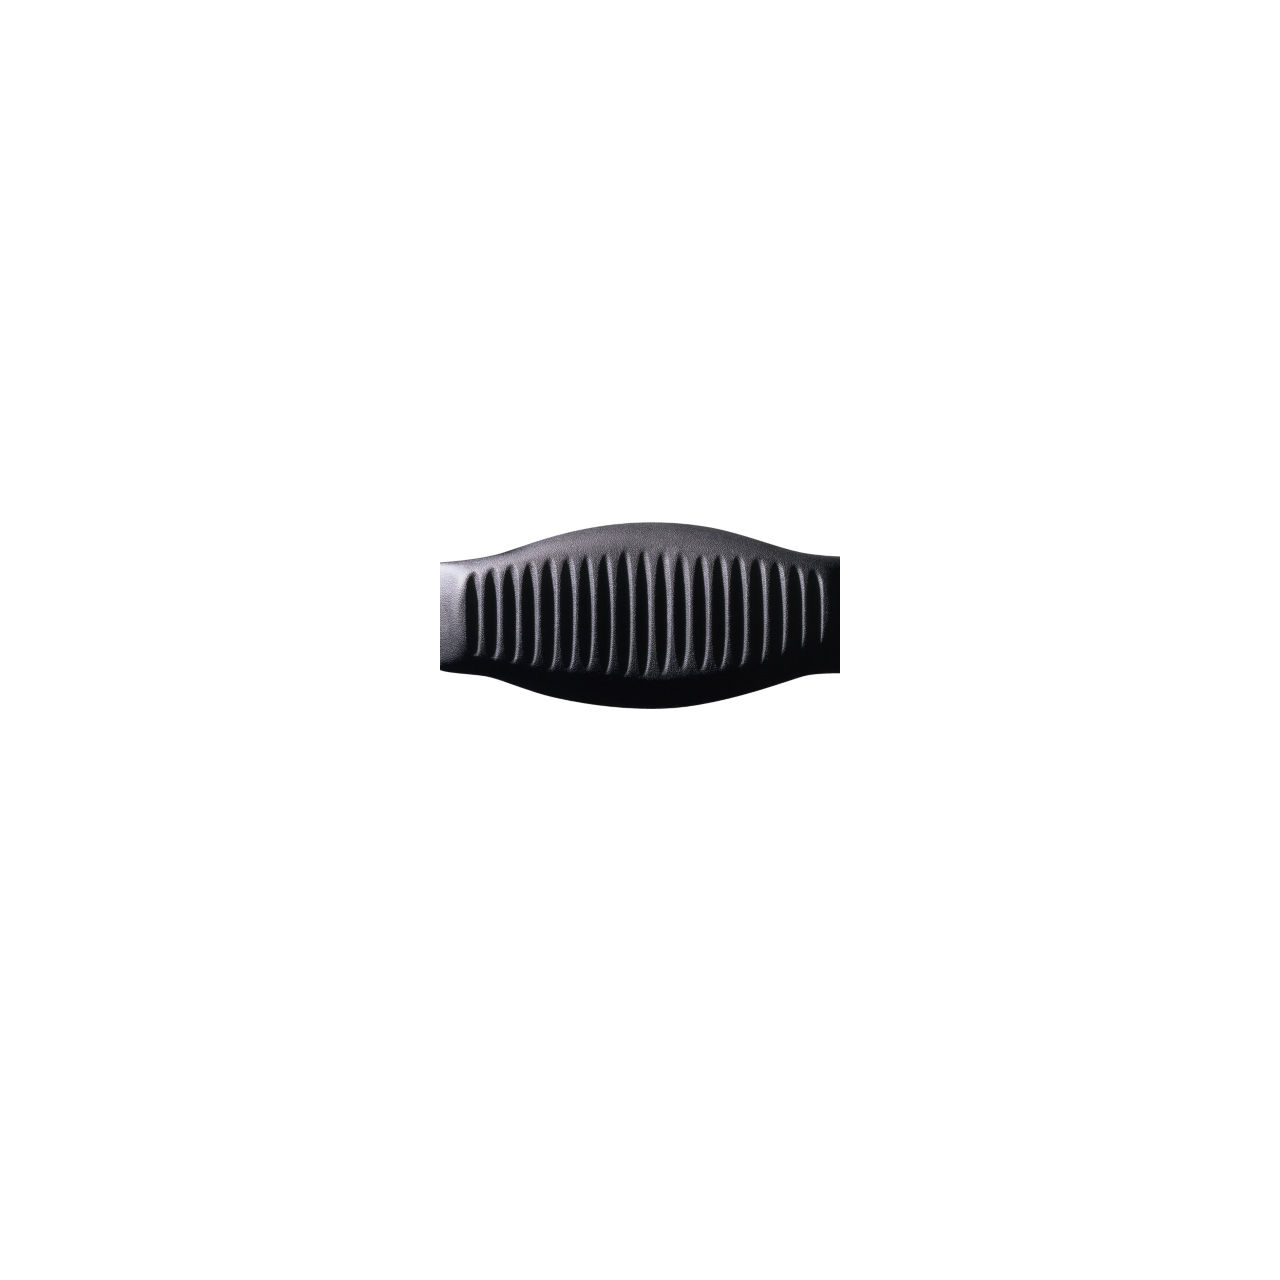 Classic Aeron Lumbar Support Kit in Graphite Size B by Herman Miller